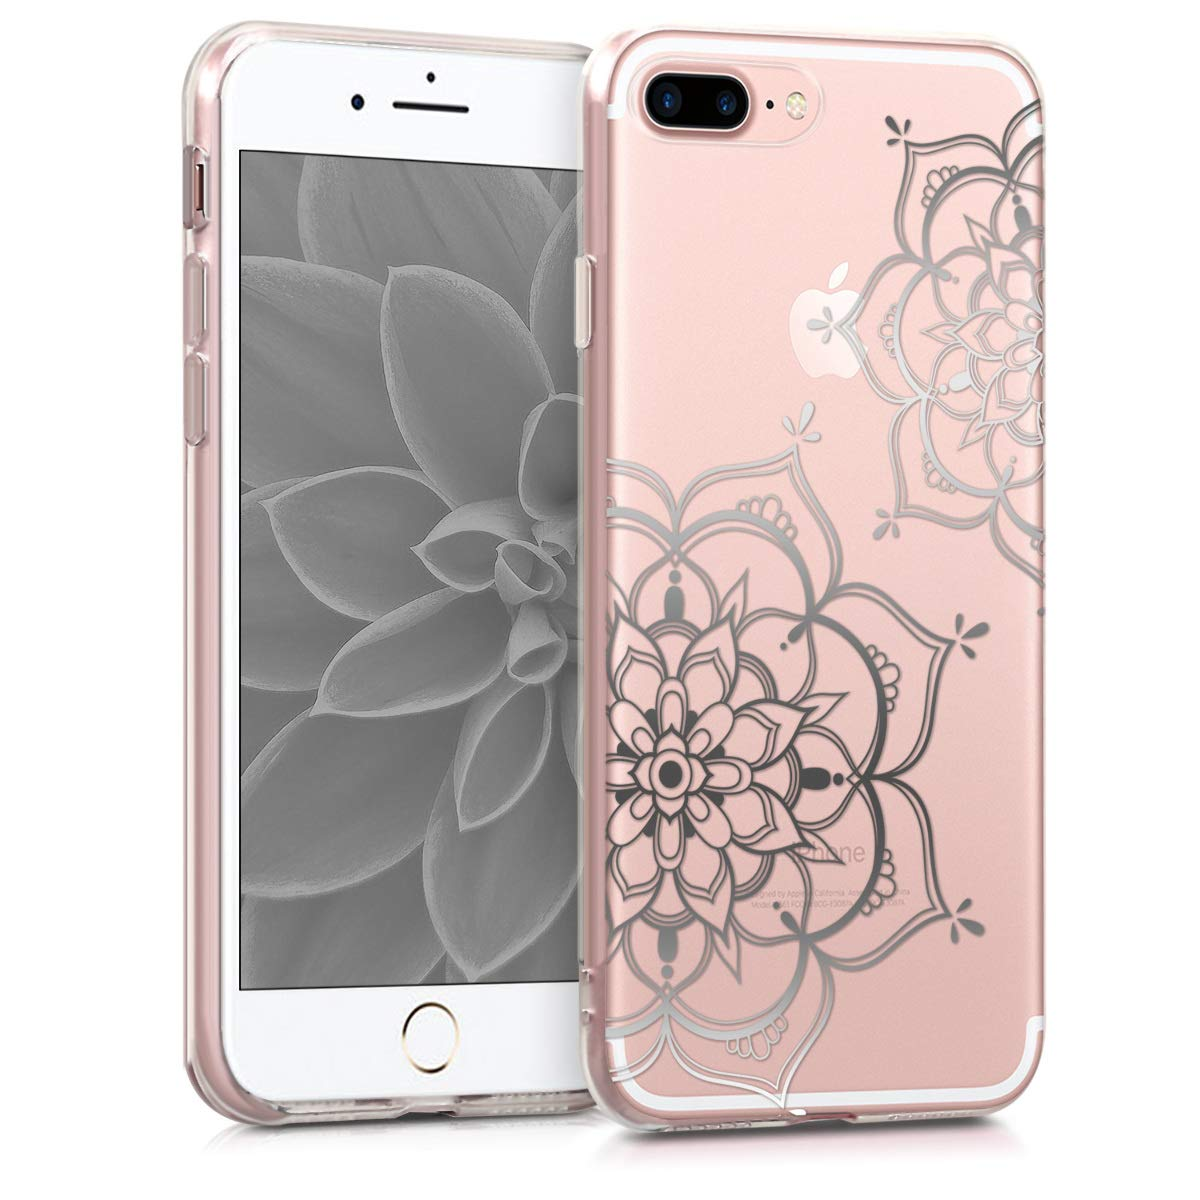 coque iphone 7 fleurie transparant